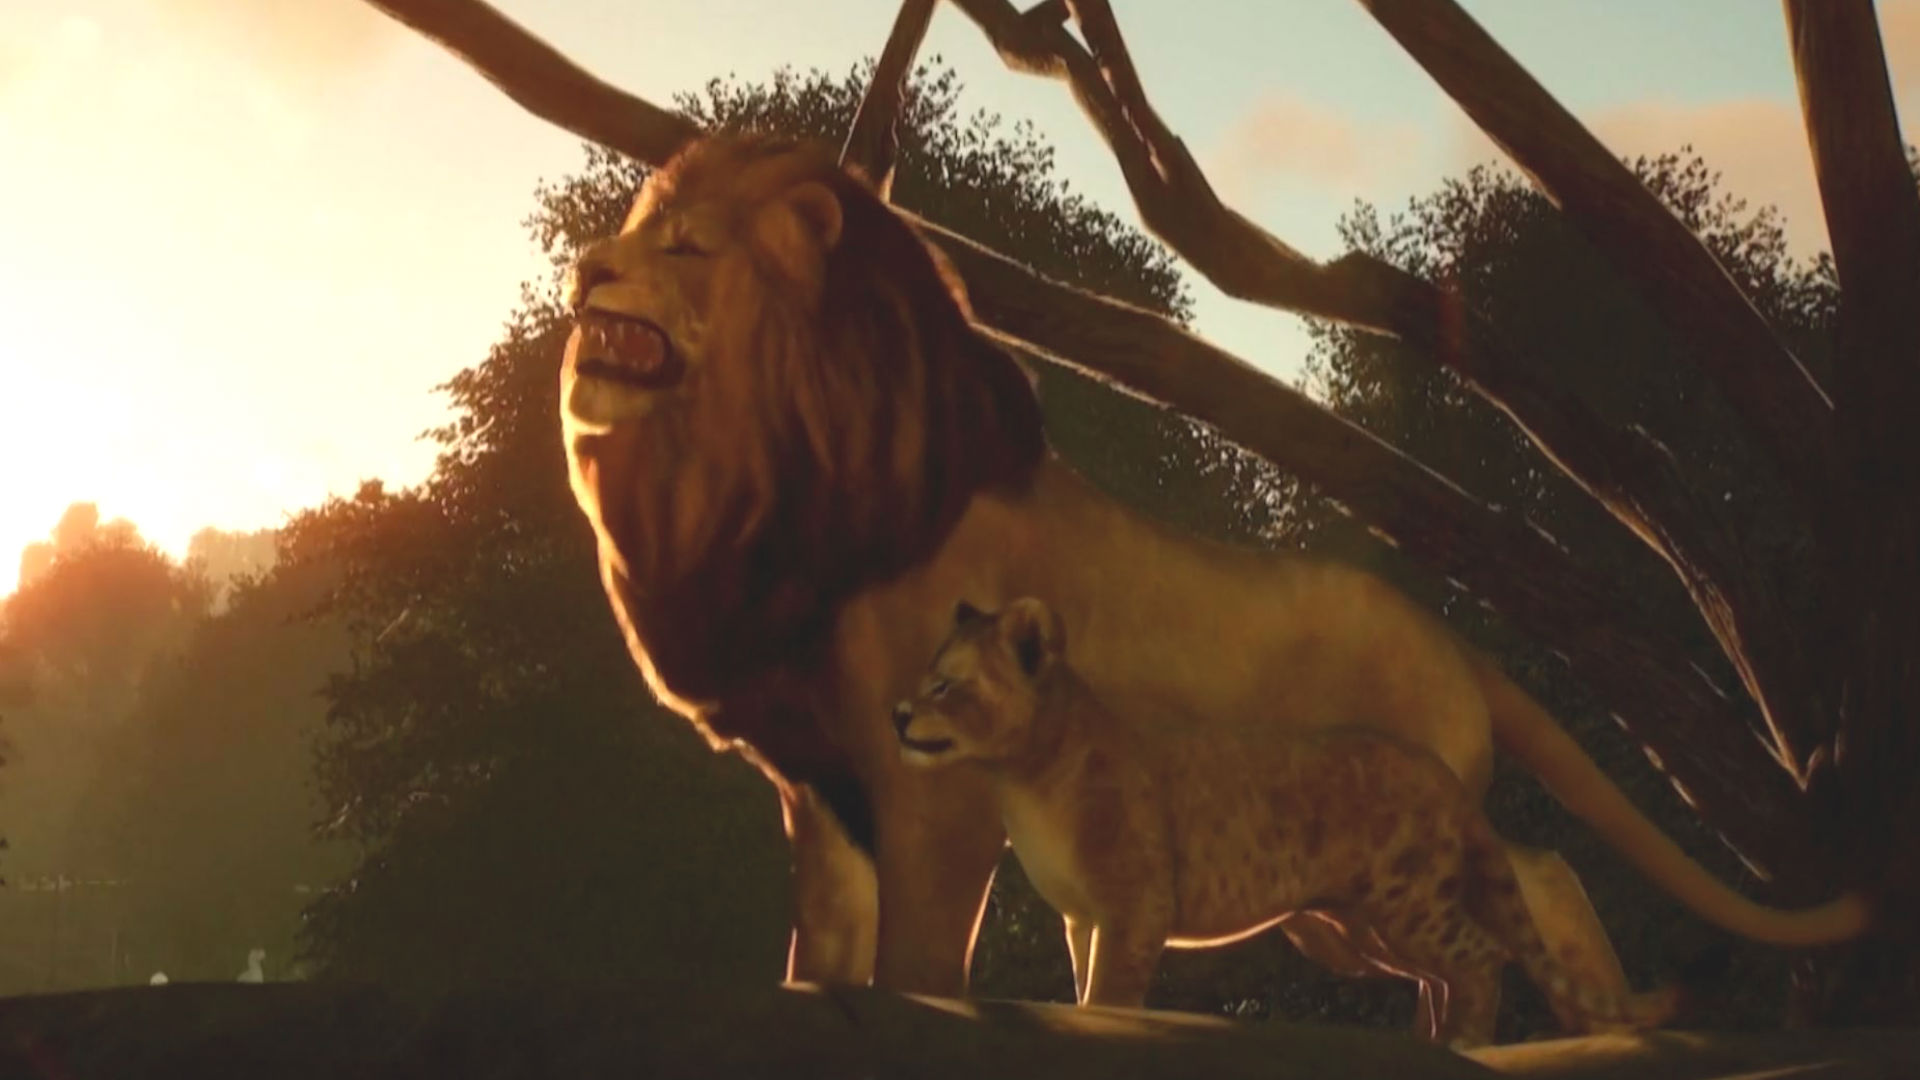 Planet Zoo Will Focus On Animal Welfare And Conservation